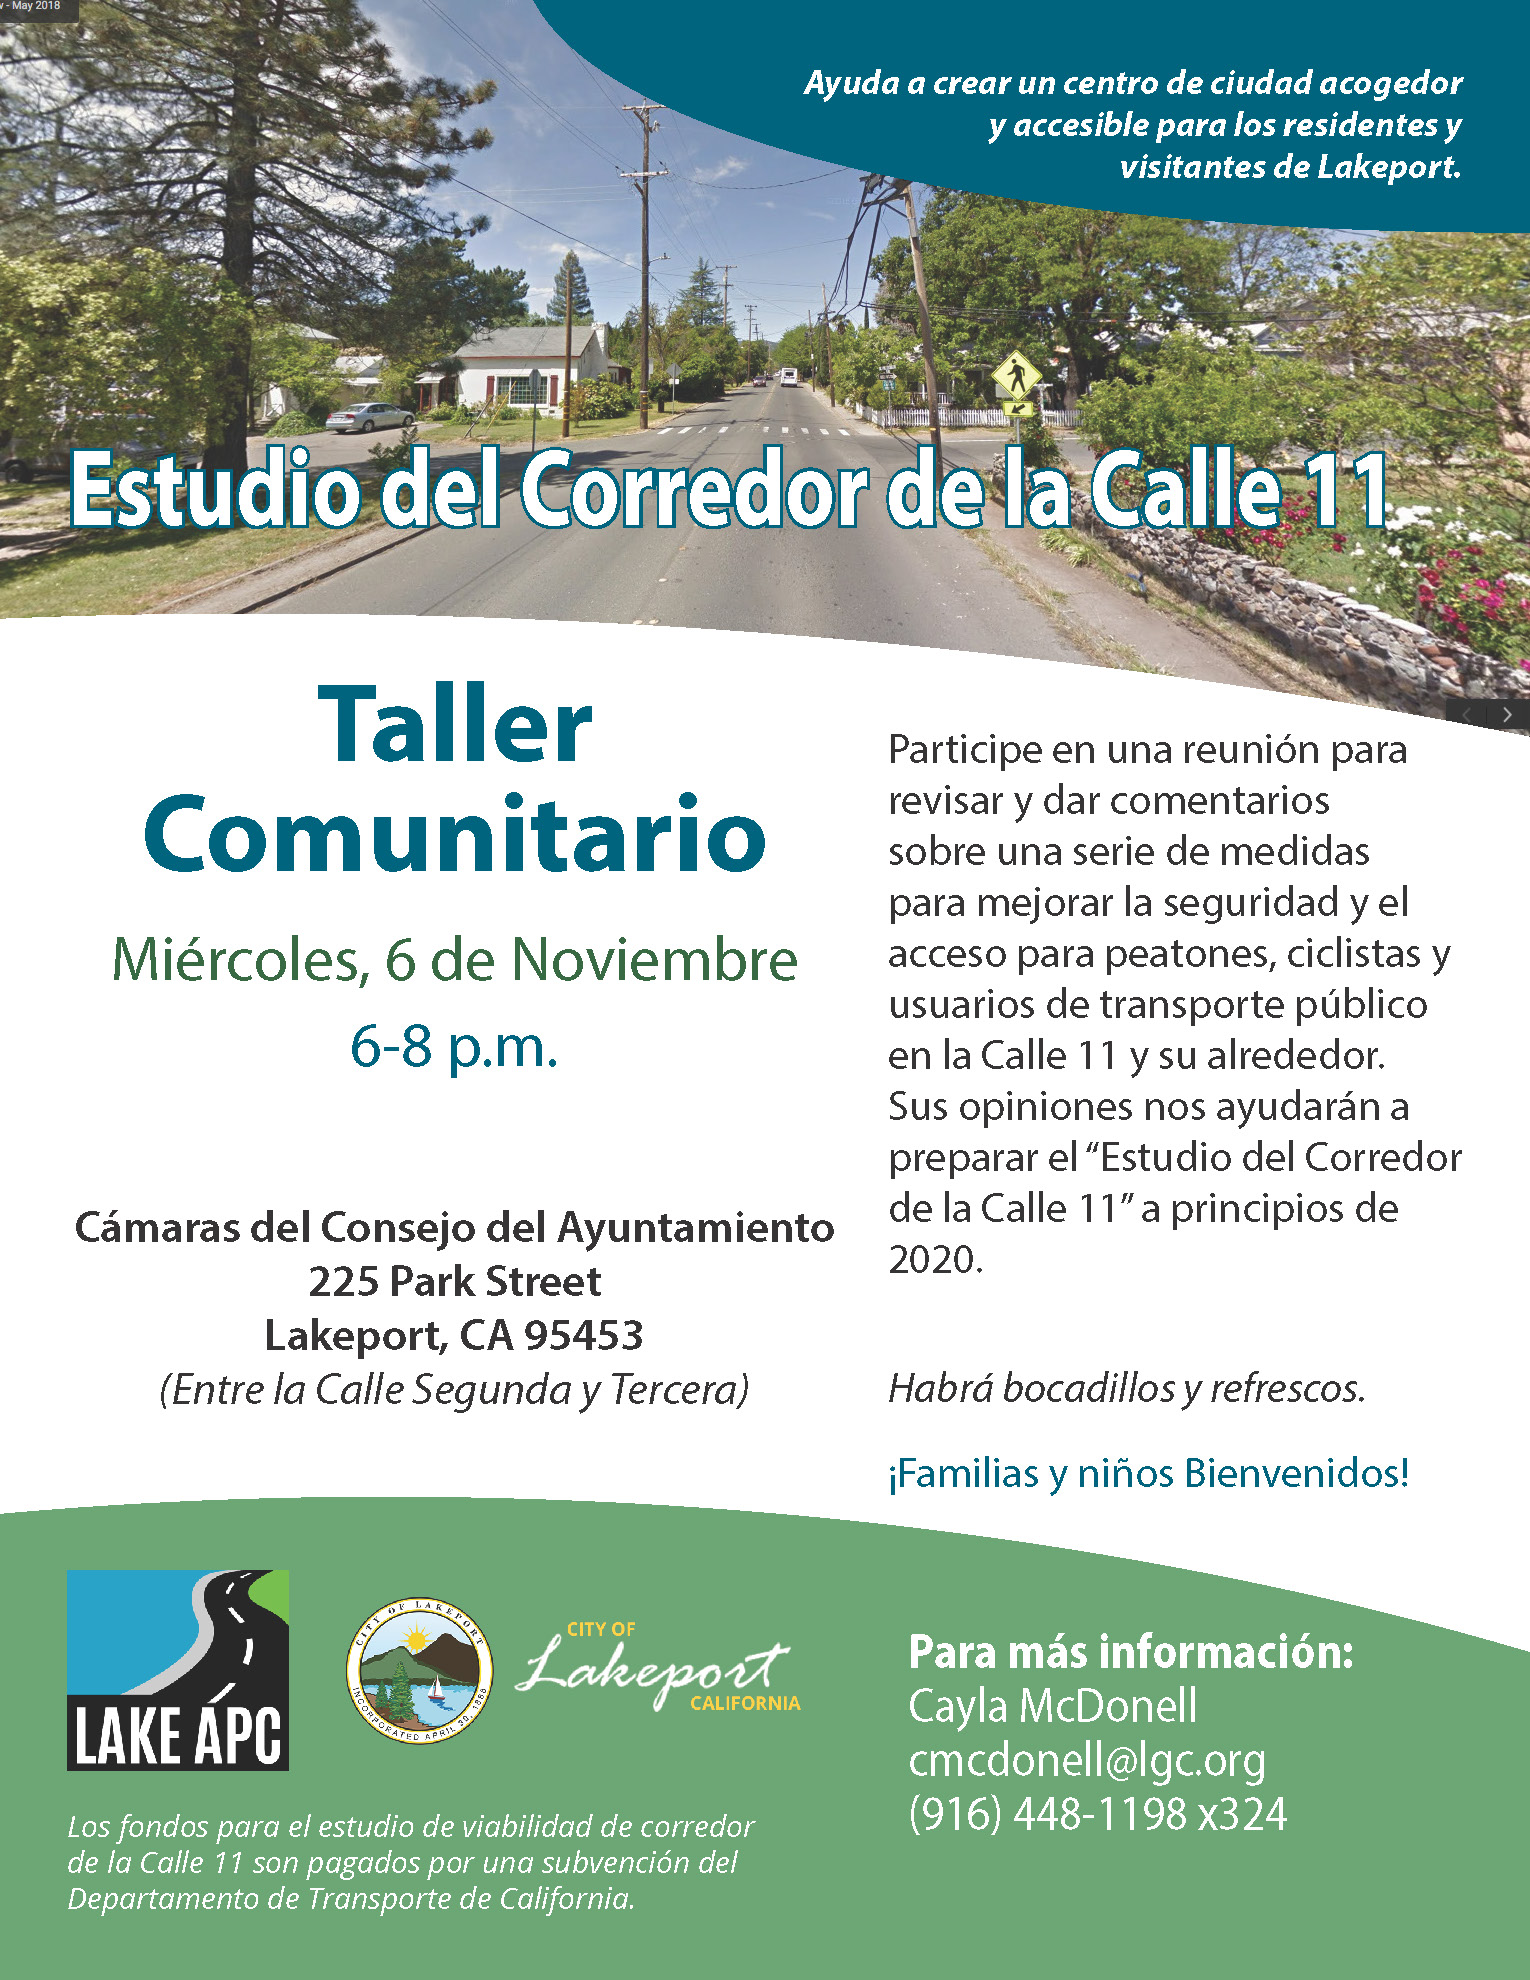 Picture of the flyer for the community workshop in Spanish